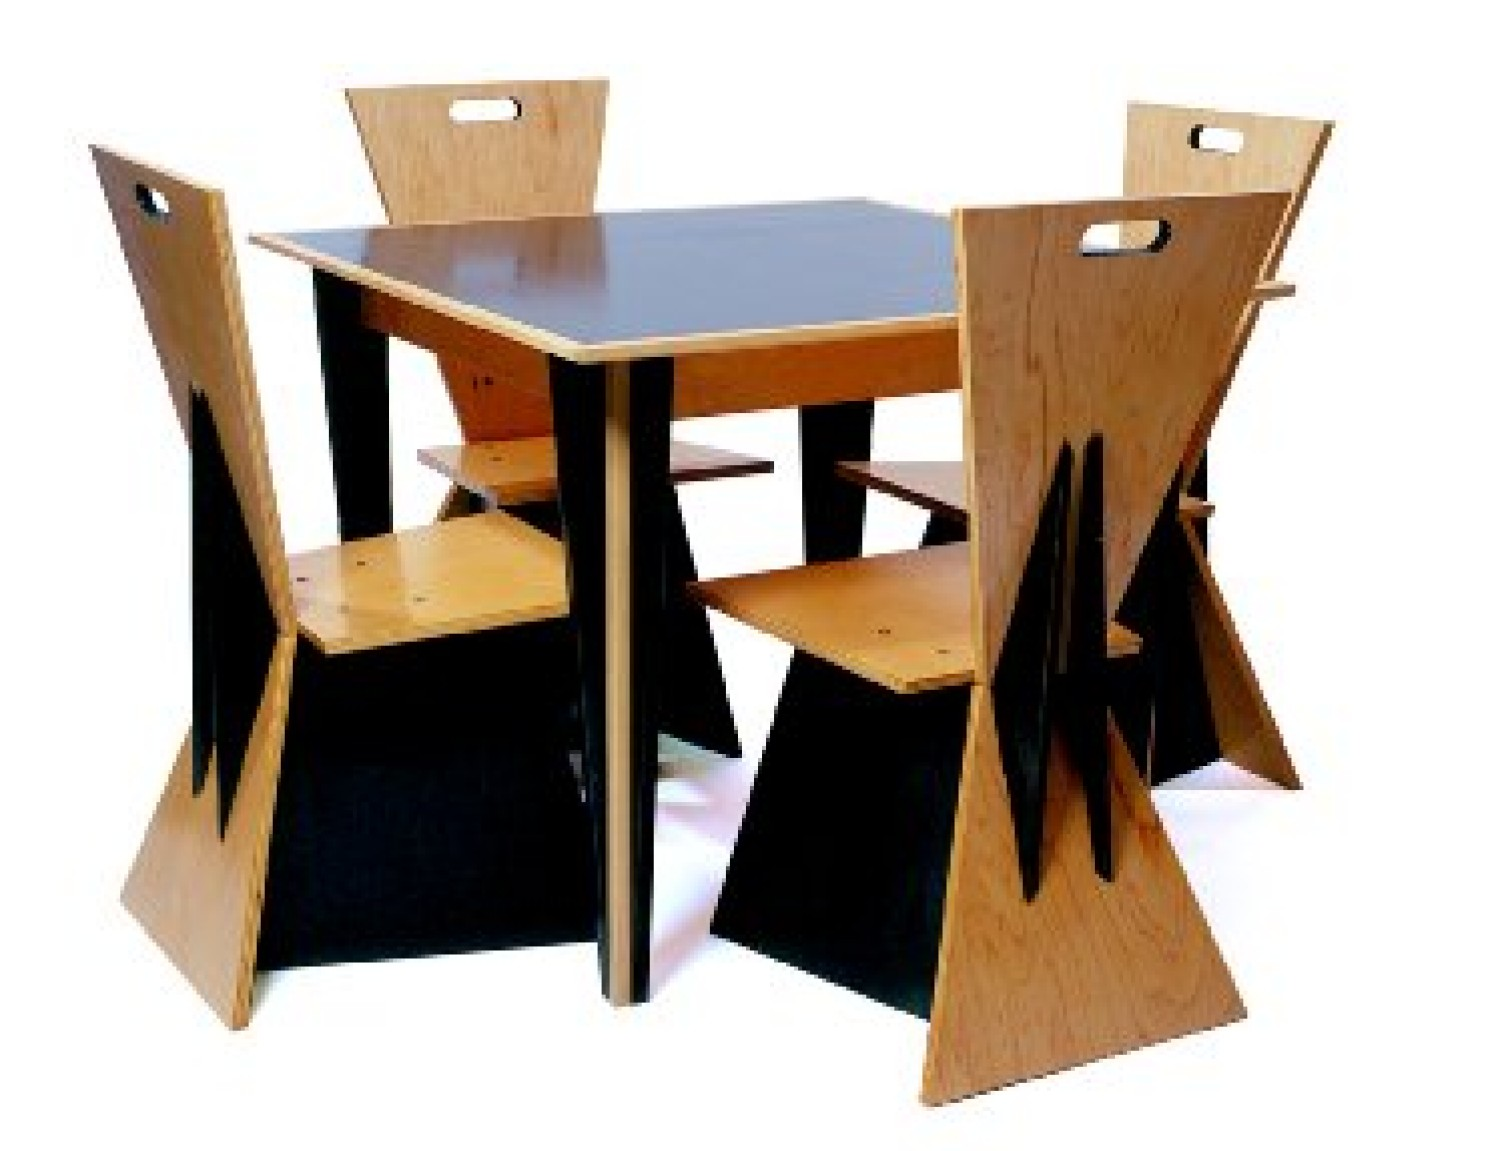 Cafe Table and Chairs.jpg